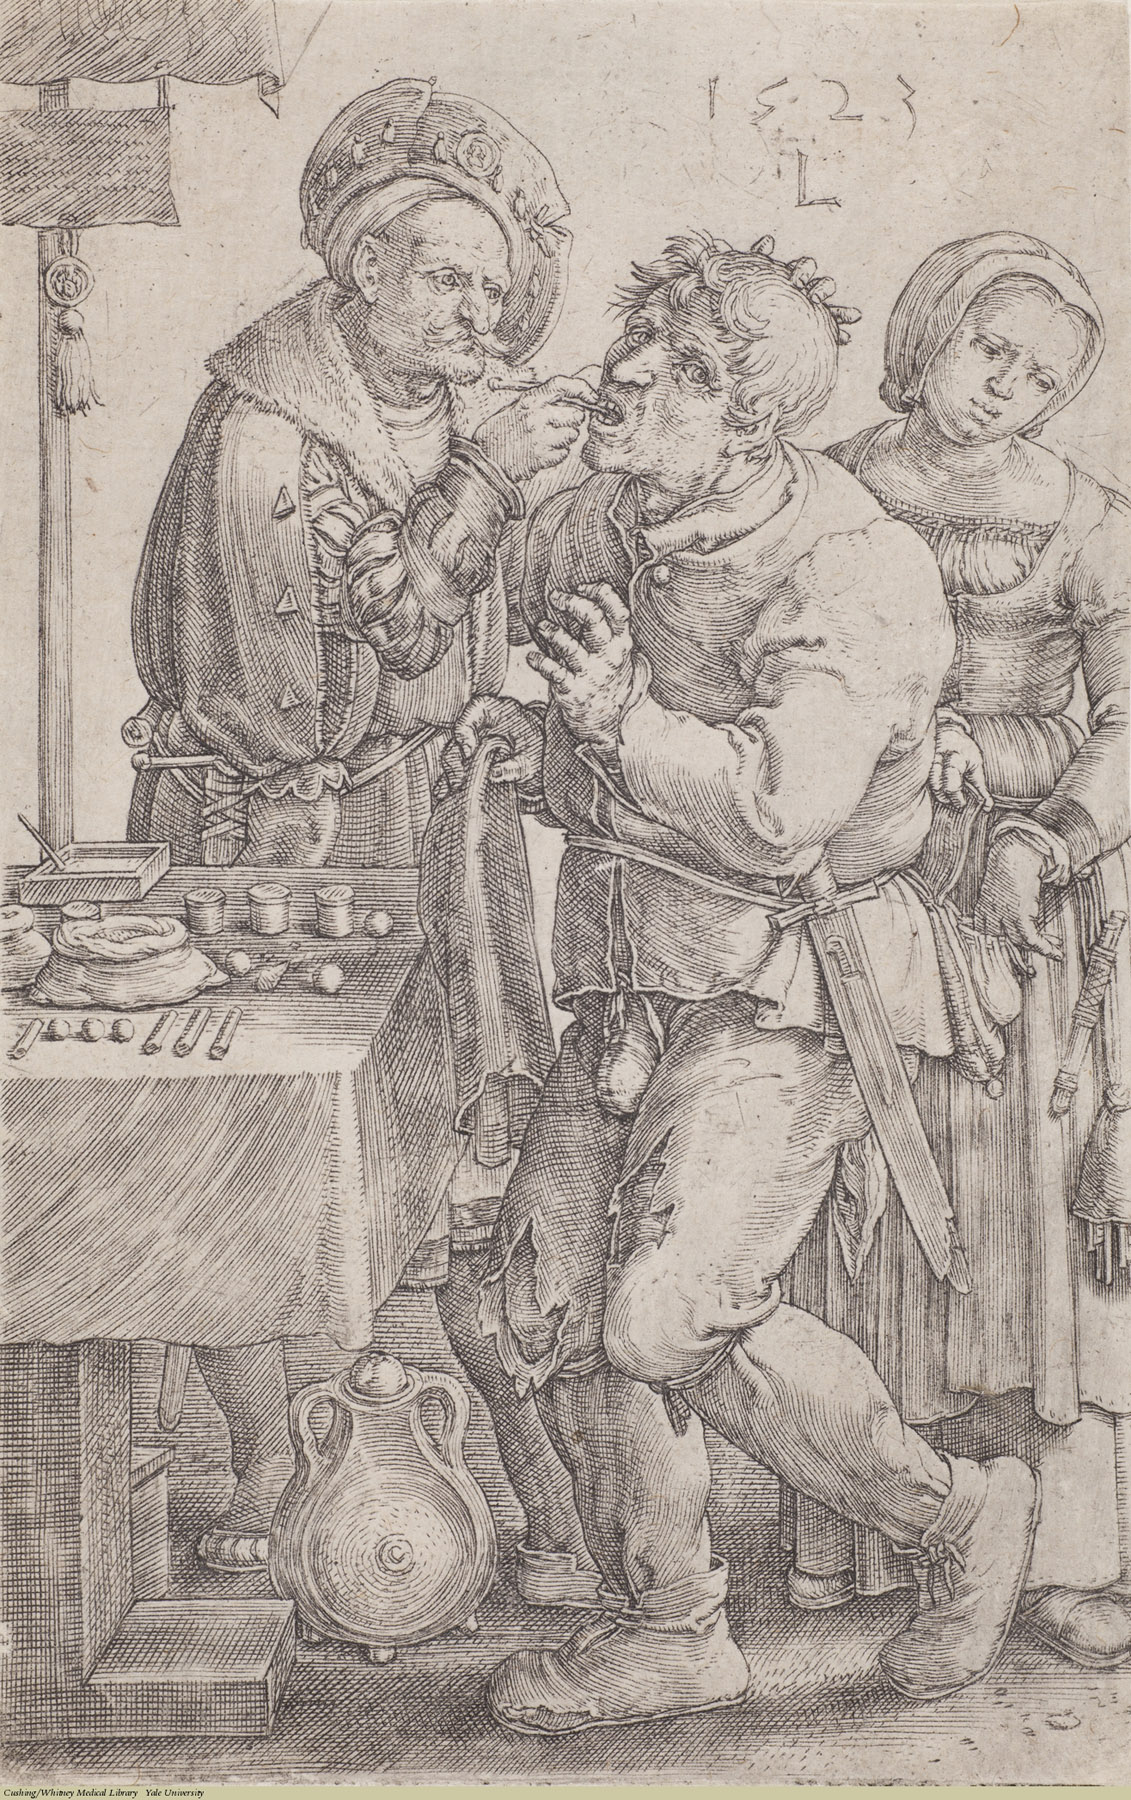 The Charlatan (The Dentist). Lucas van Leyden, Laid, 1523. Subject: Tooth Extraction, Charlatan, Thievery.